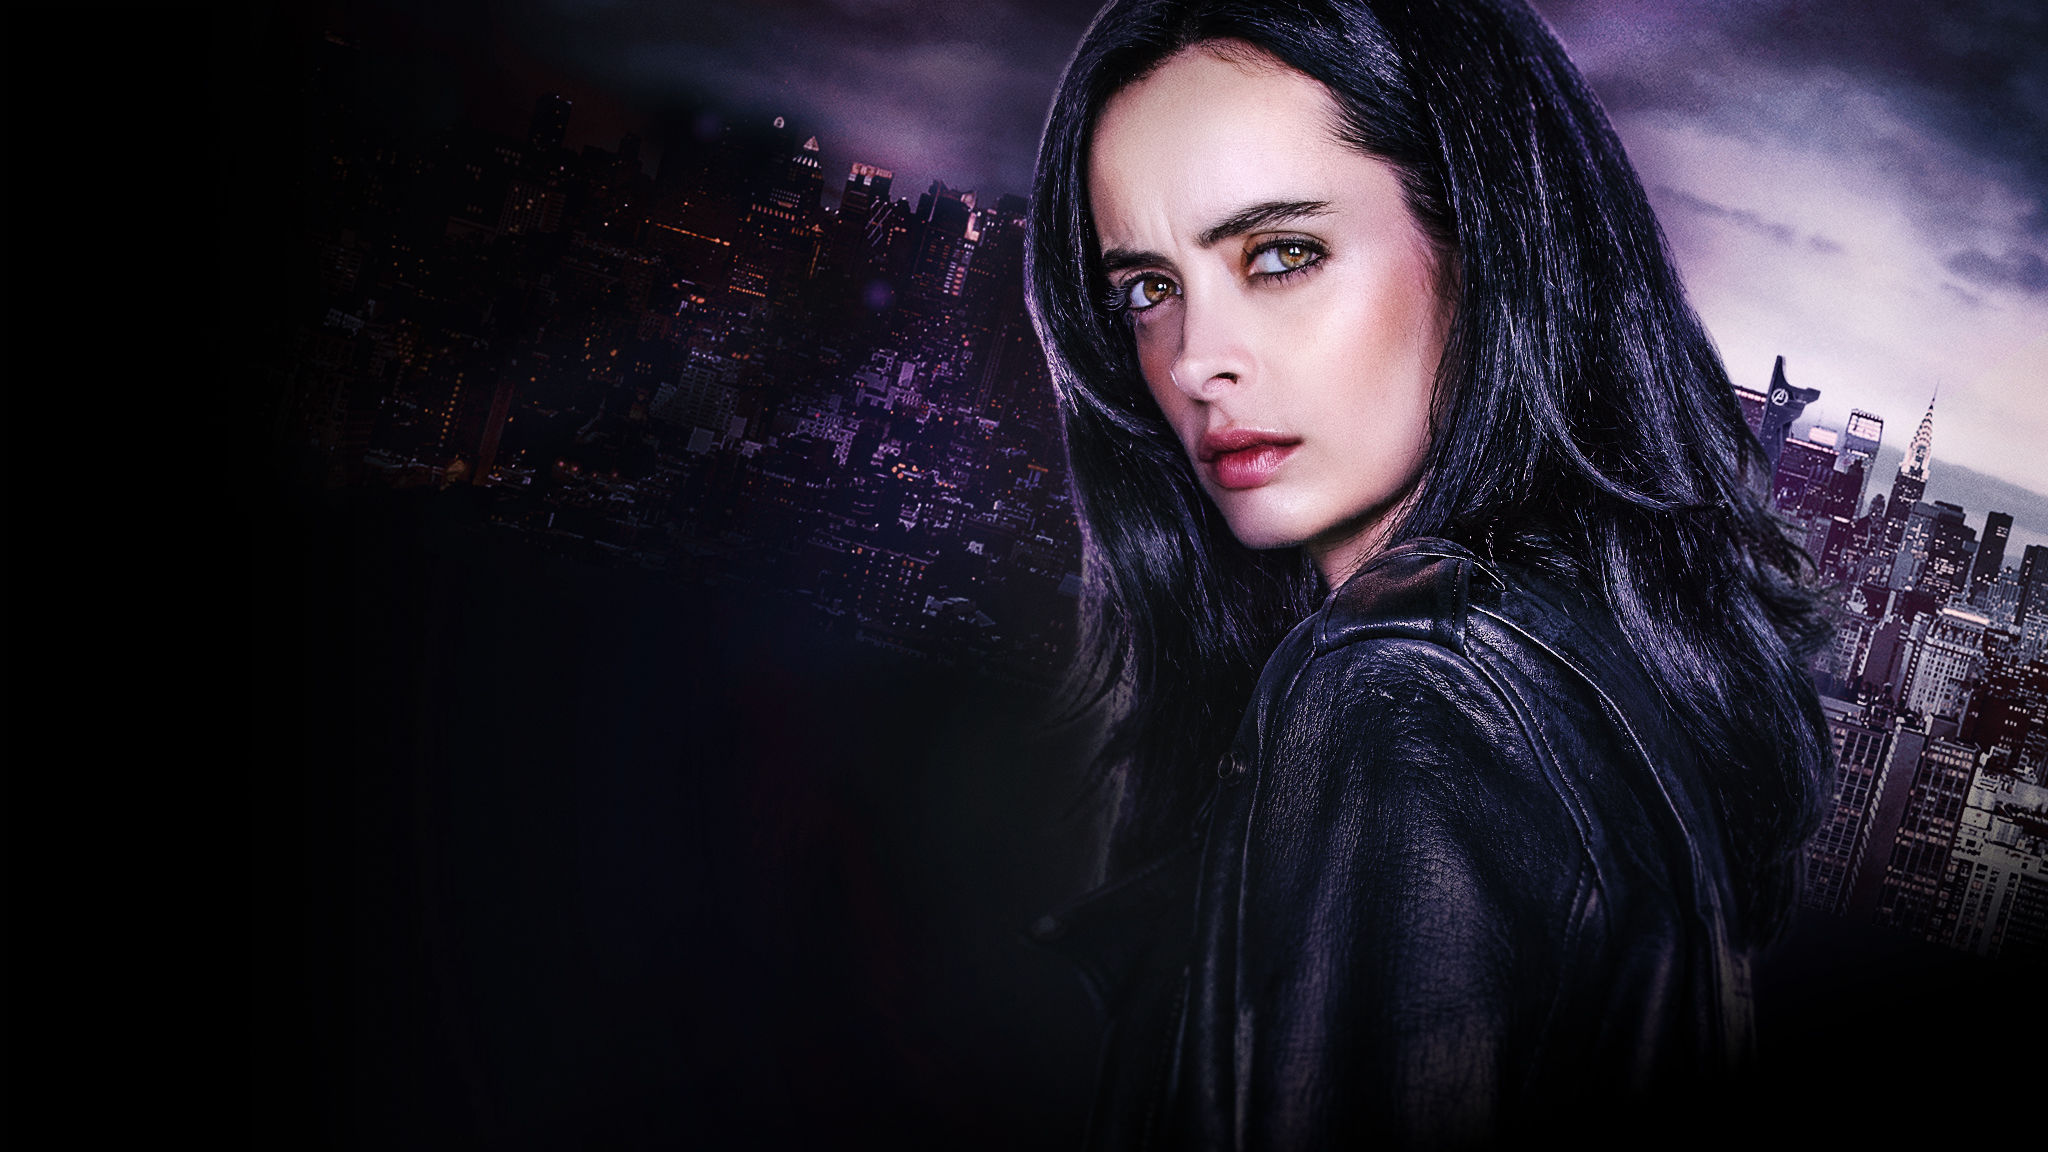 'Jessica Jones' Series 2 Aims to Hire Only Female Director